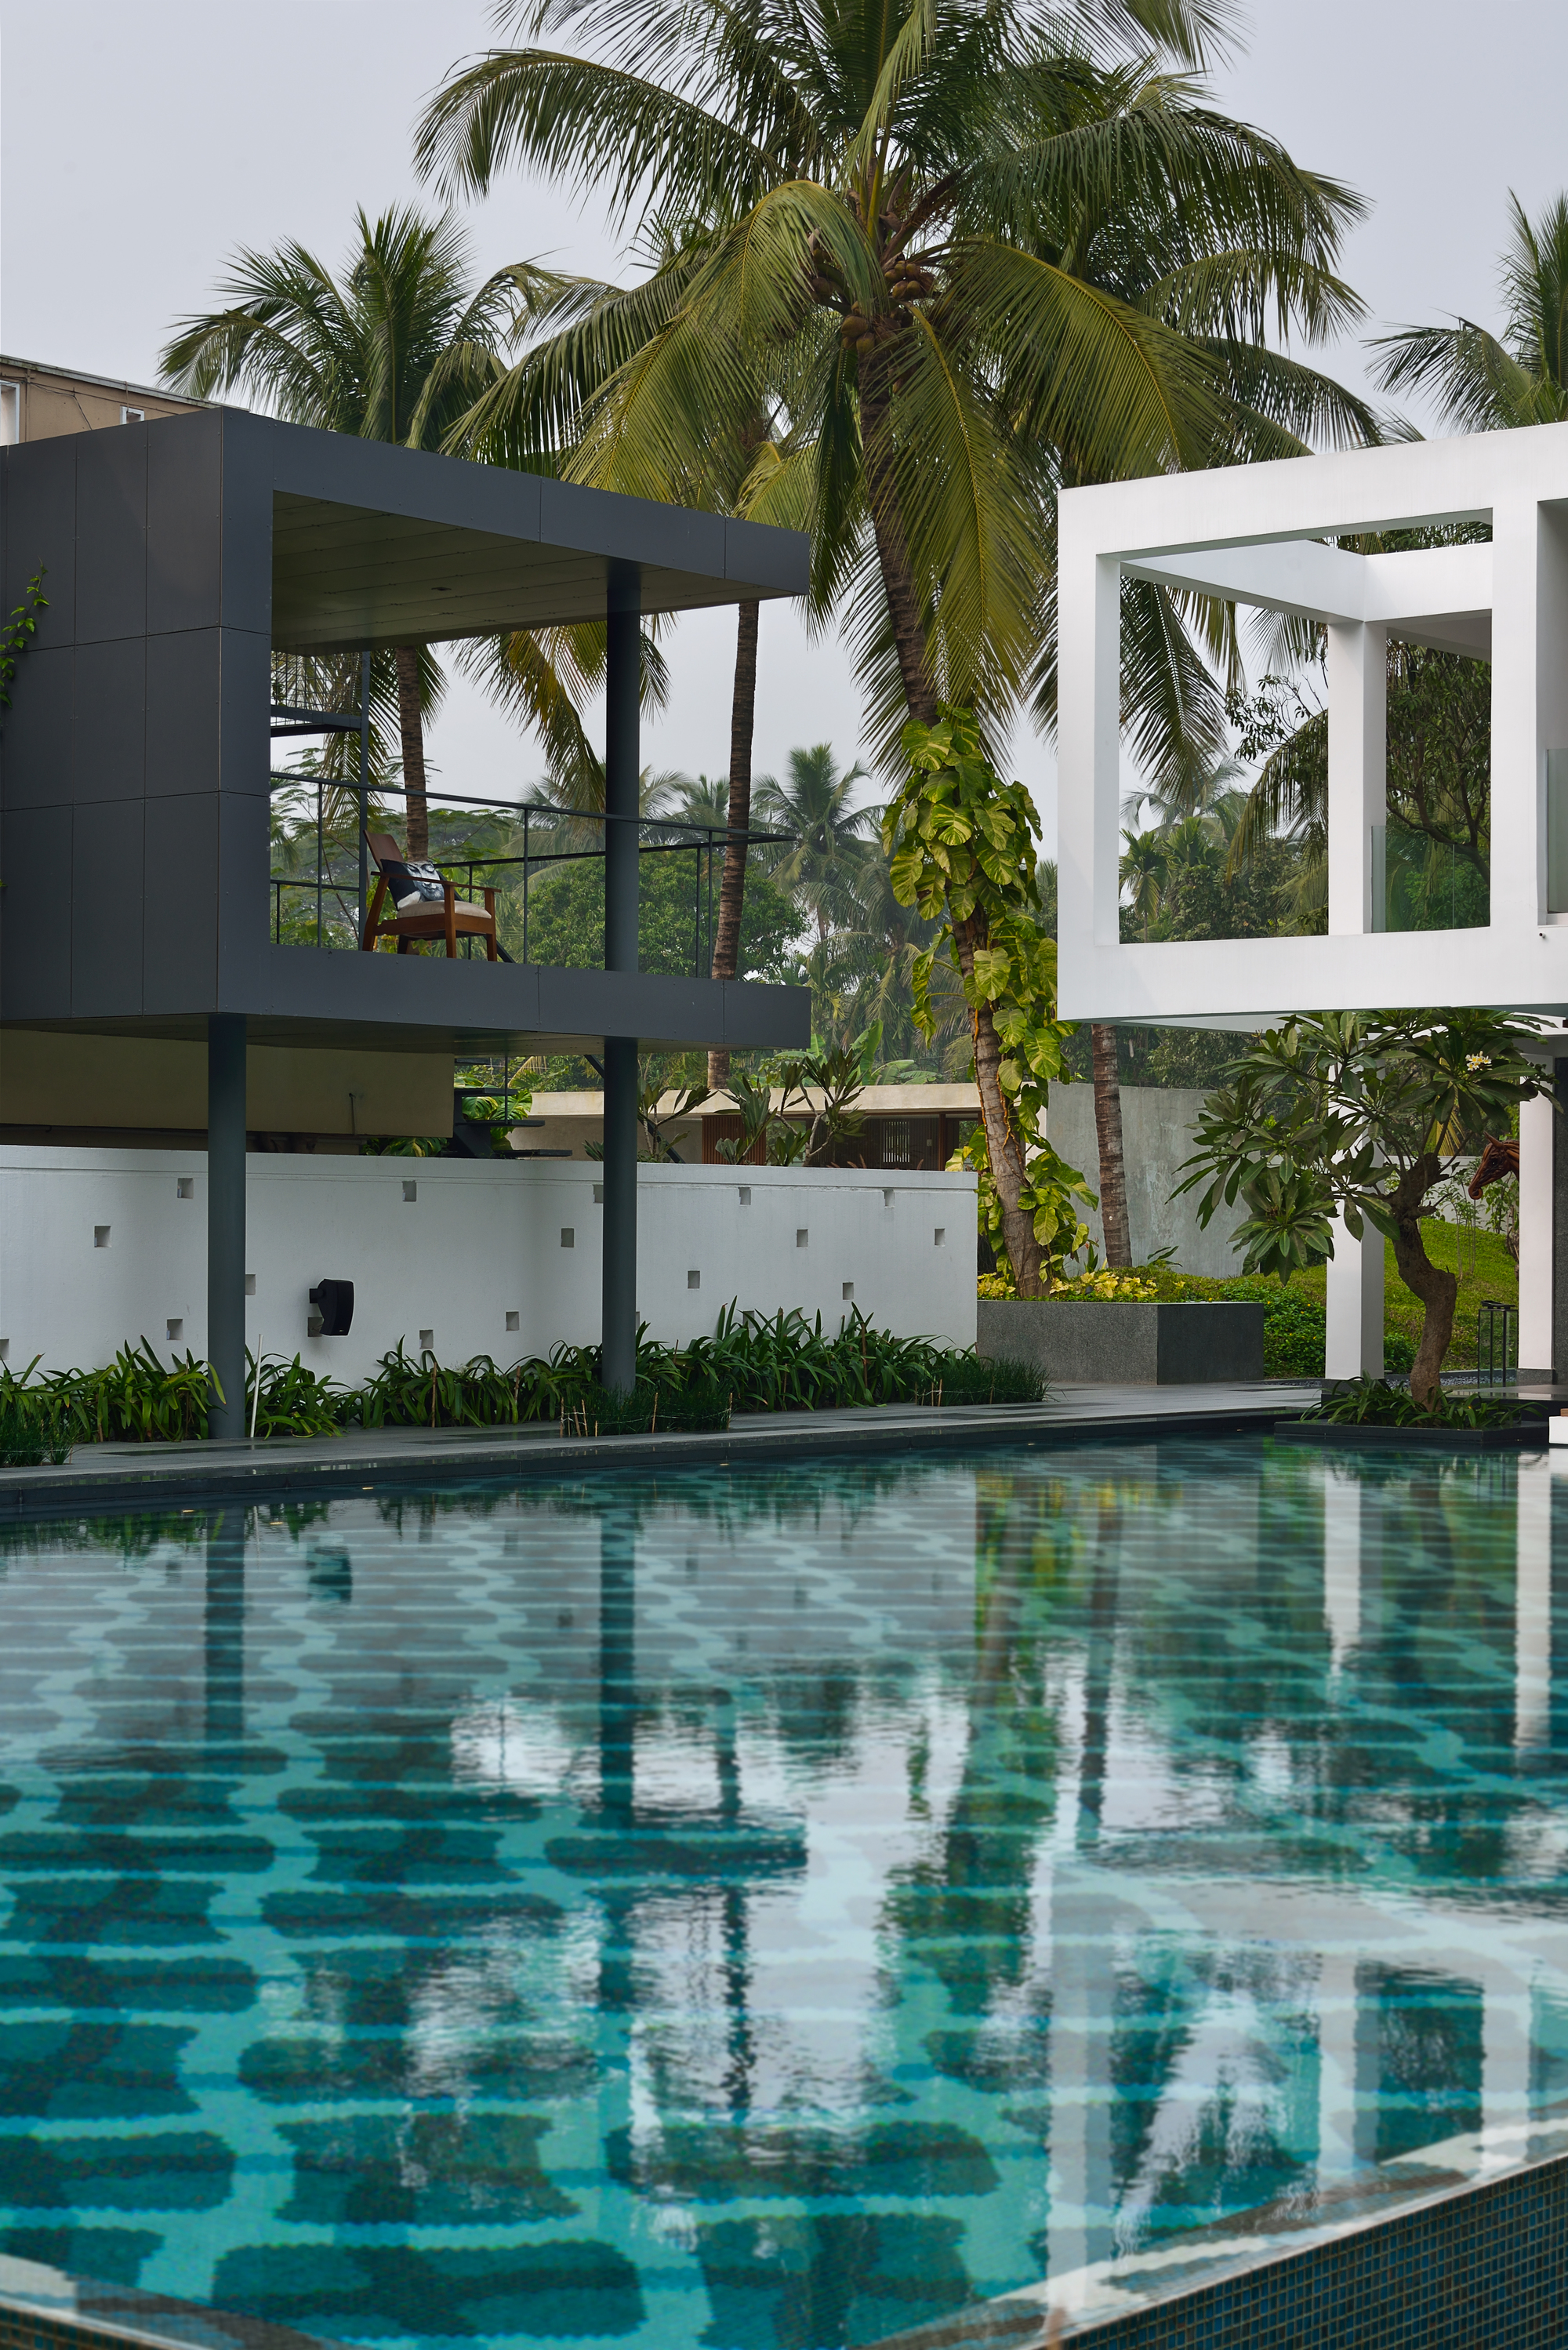 Gallery of pool house abin design studio 5 for Pool design studio